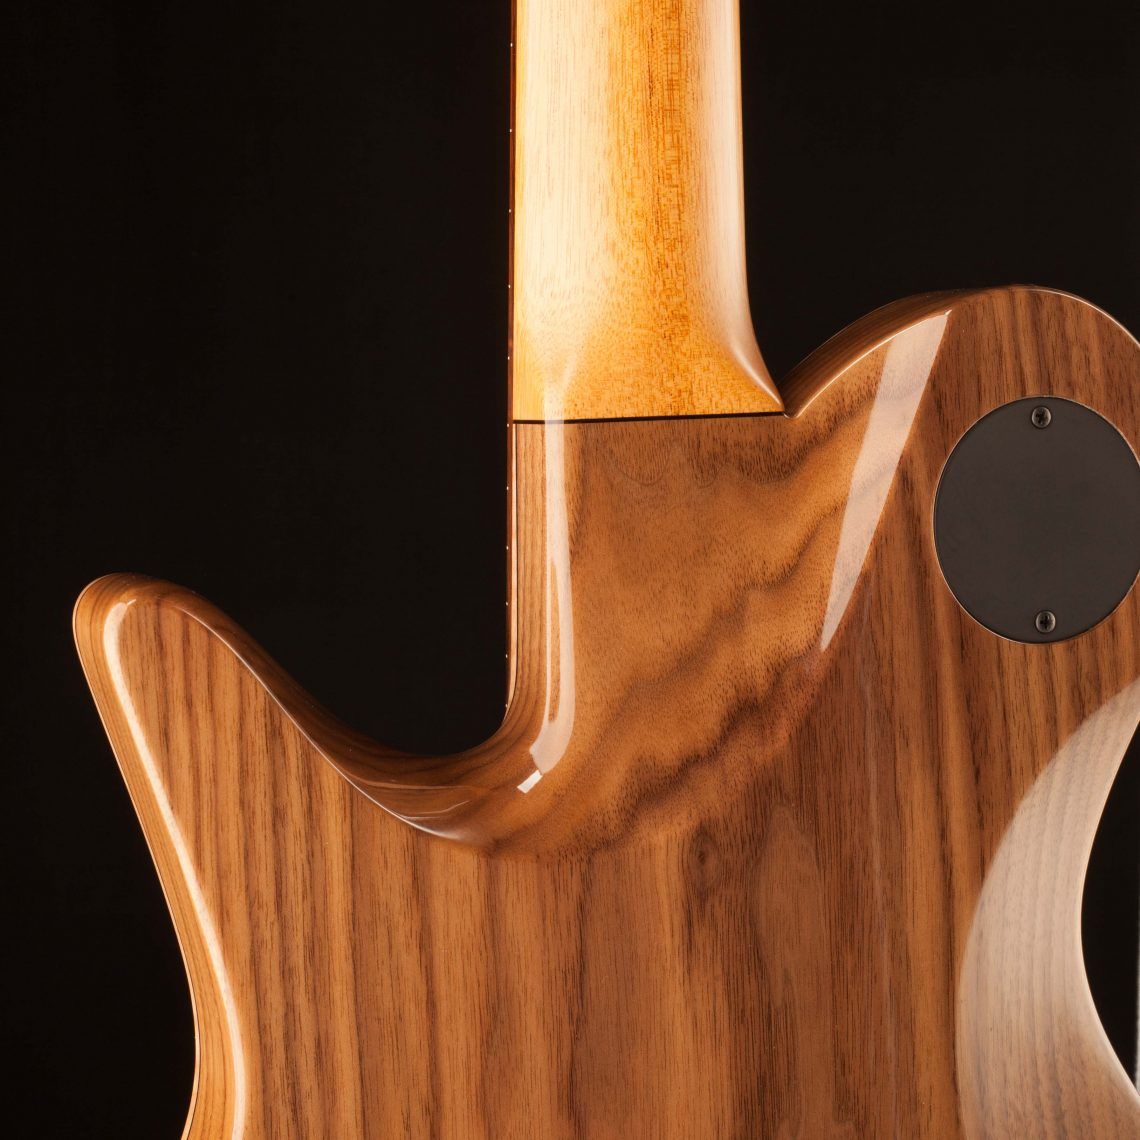 imperial custom bass guitar specifications explore our options fodera guitars. Black Bedroom Furniture Sets. Home Design Ideas